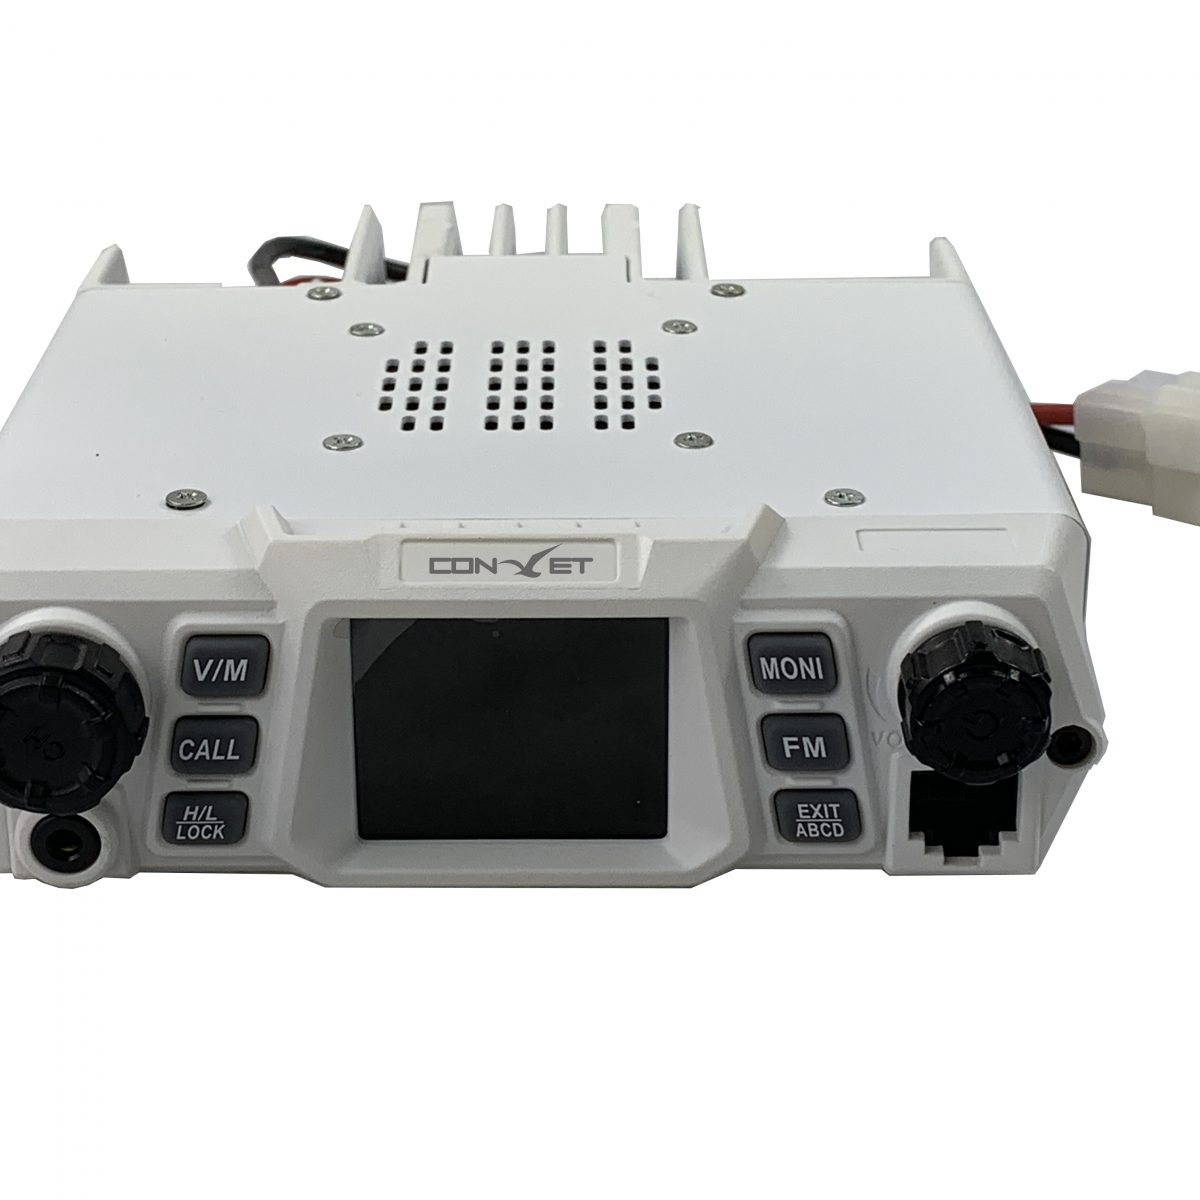 Contalk Super high power 100W mobile radio base station, with long range communication, couuld be used as repeater